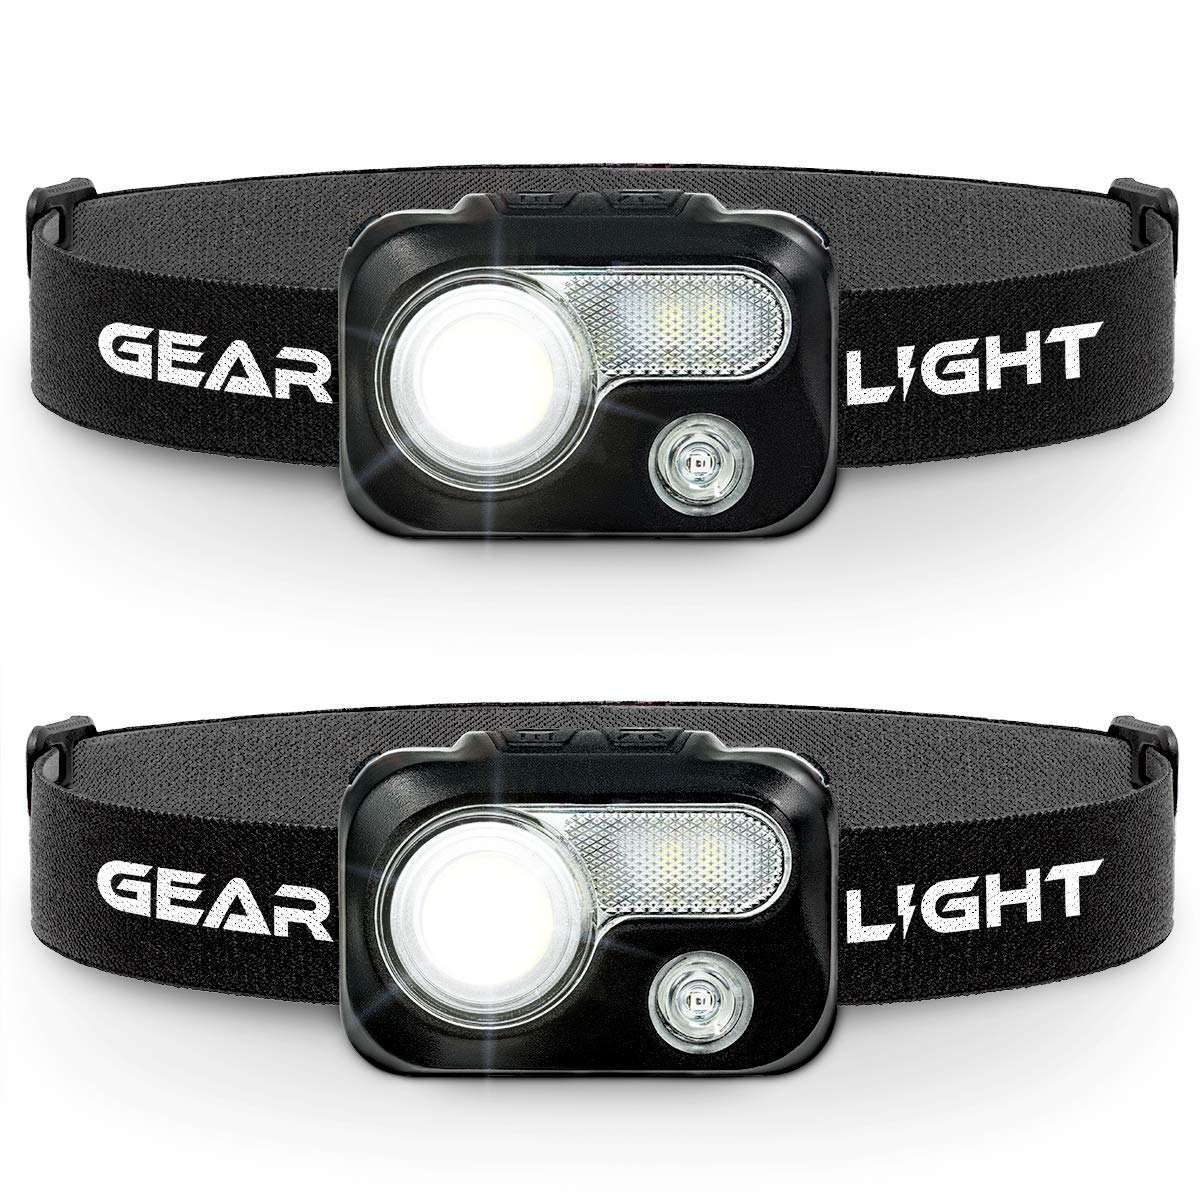 GearLight LED Headlamp Flashlight V500 [2 PACK] - Running, Camping, and Reading Head Lamp/Headlight - Perfect Headlamps with Red Light for Adults and Kids by GearLight